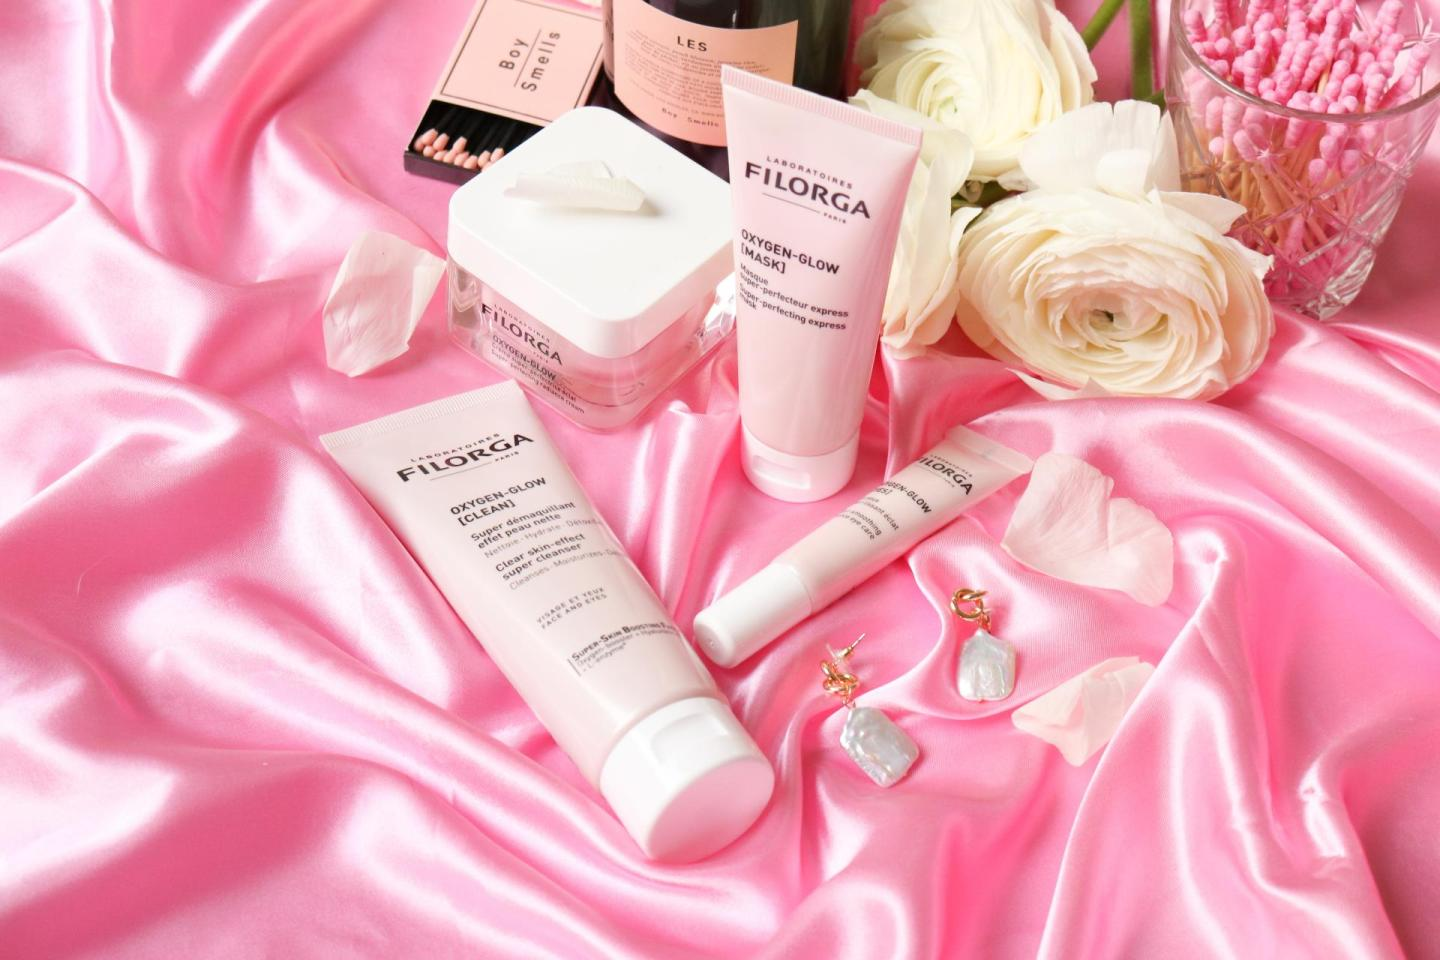 Filorga will give your skin Oxygen-Glow!